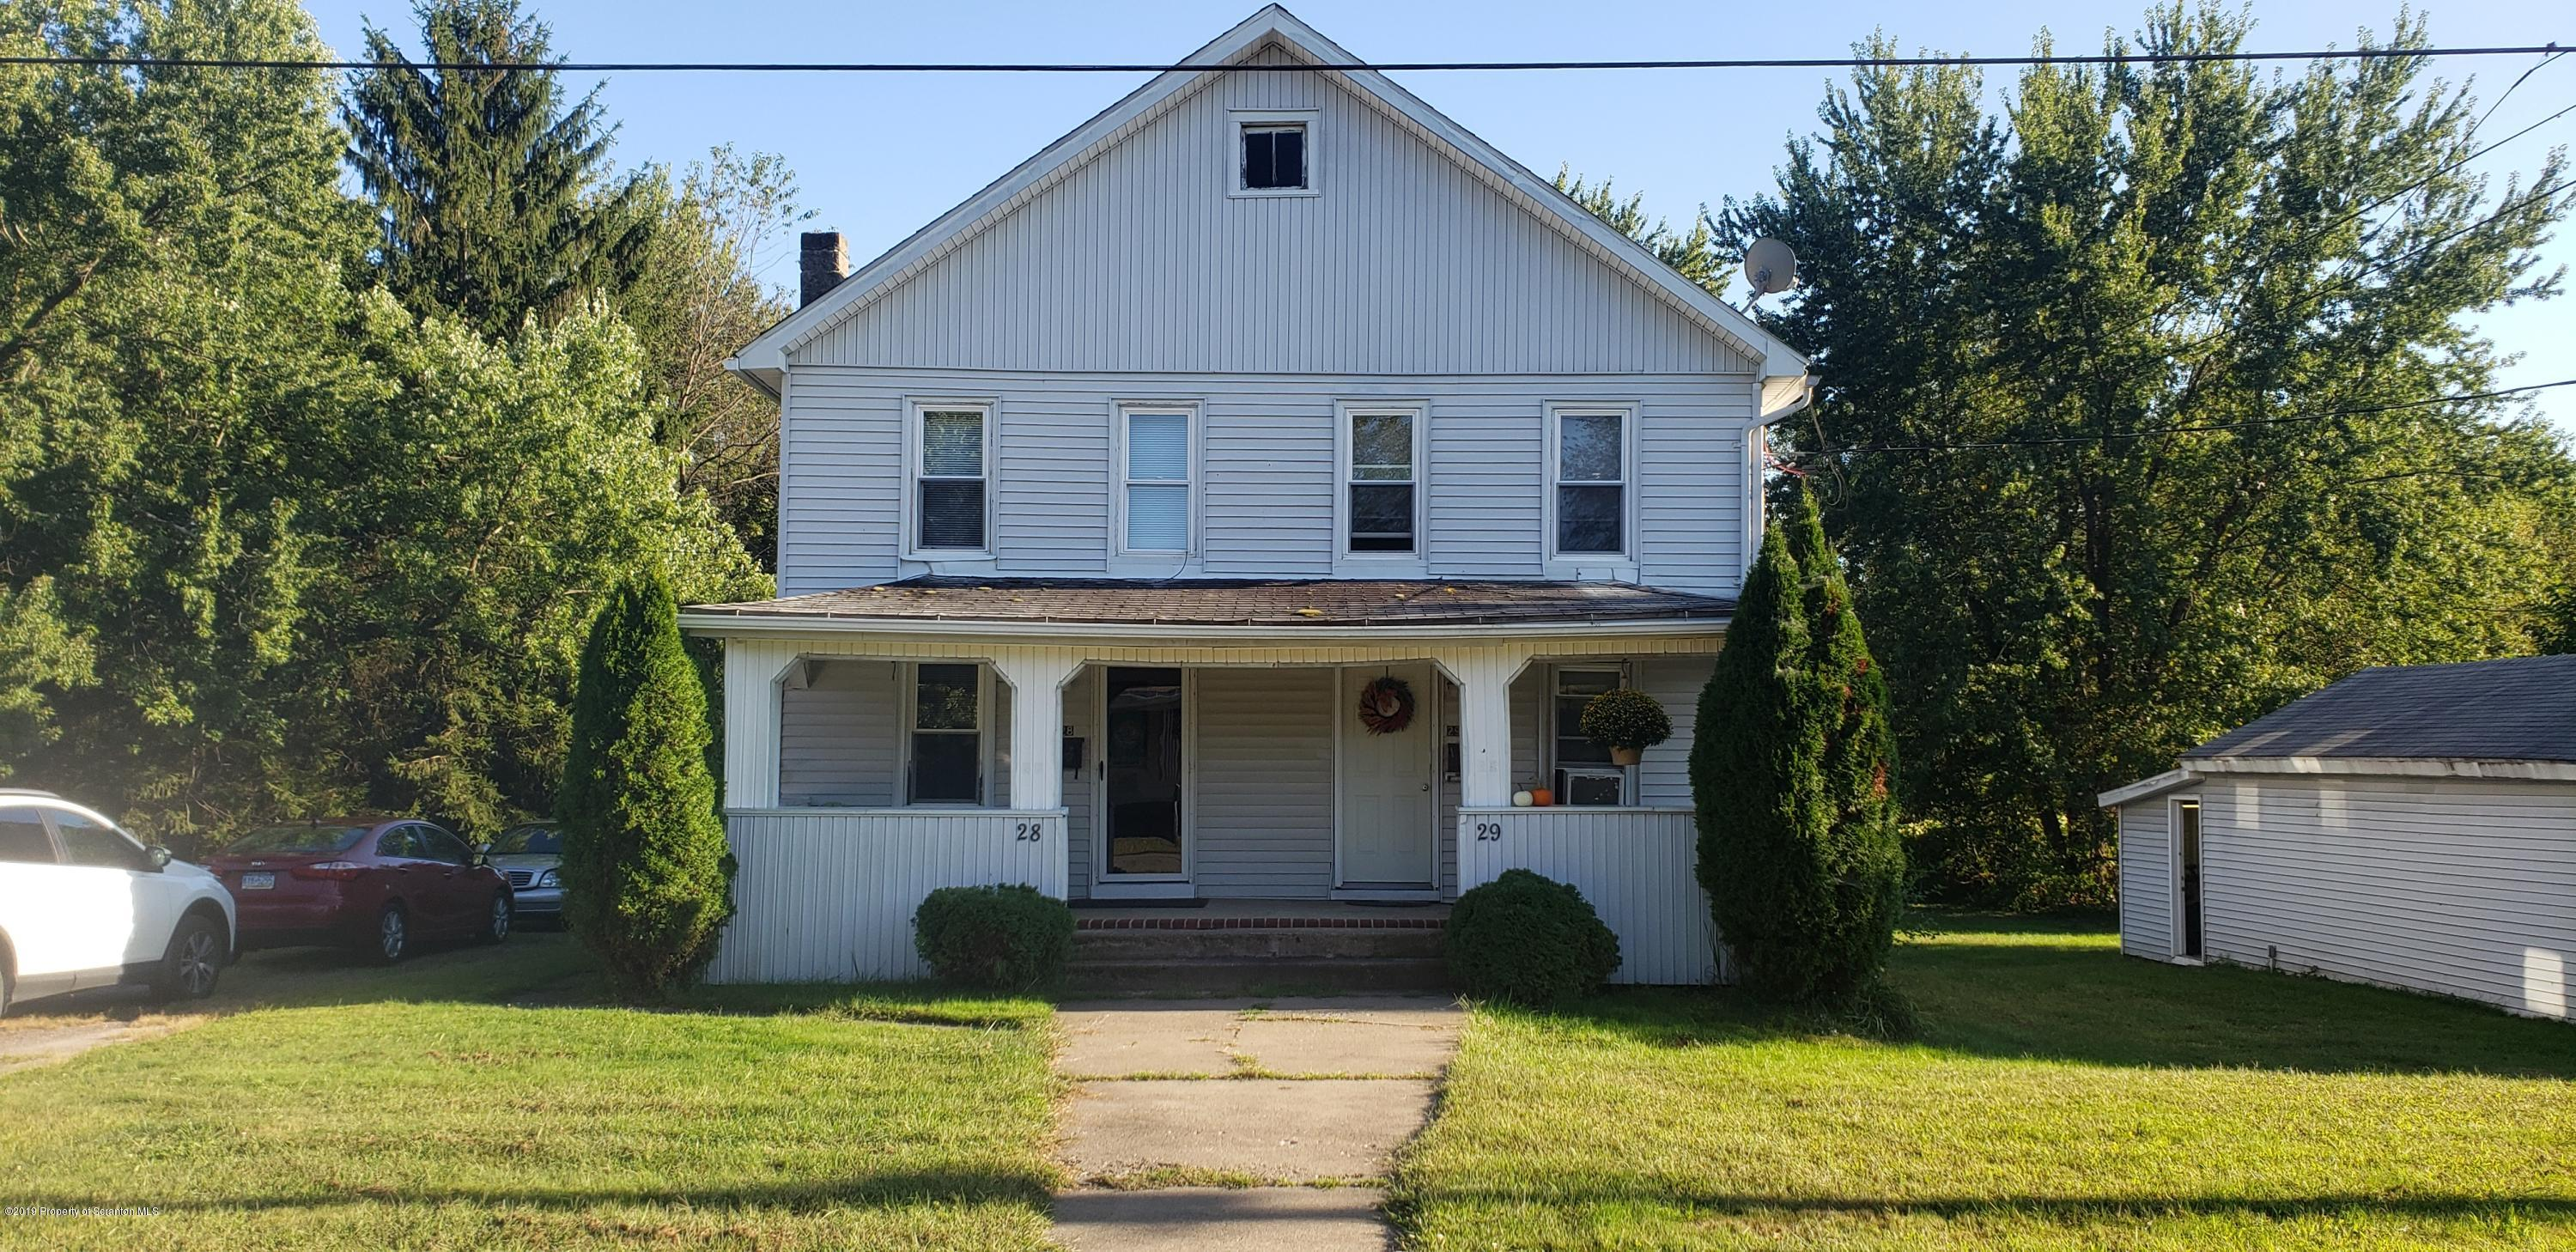 28-29 Connell St, Old Forge, Pennsylvania 18518, ,Multi-Family,For Sale,Connell,19-4689